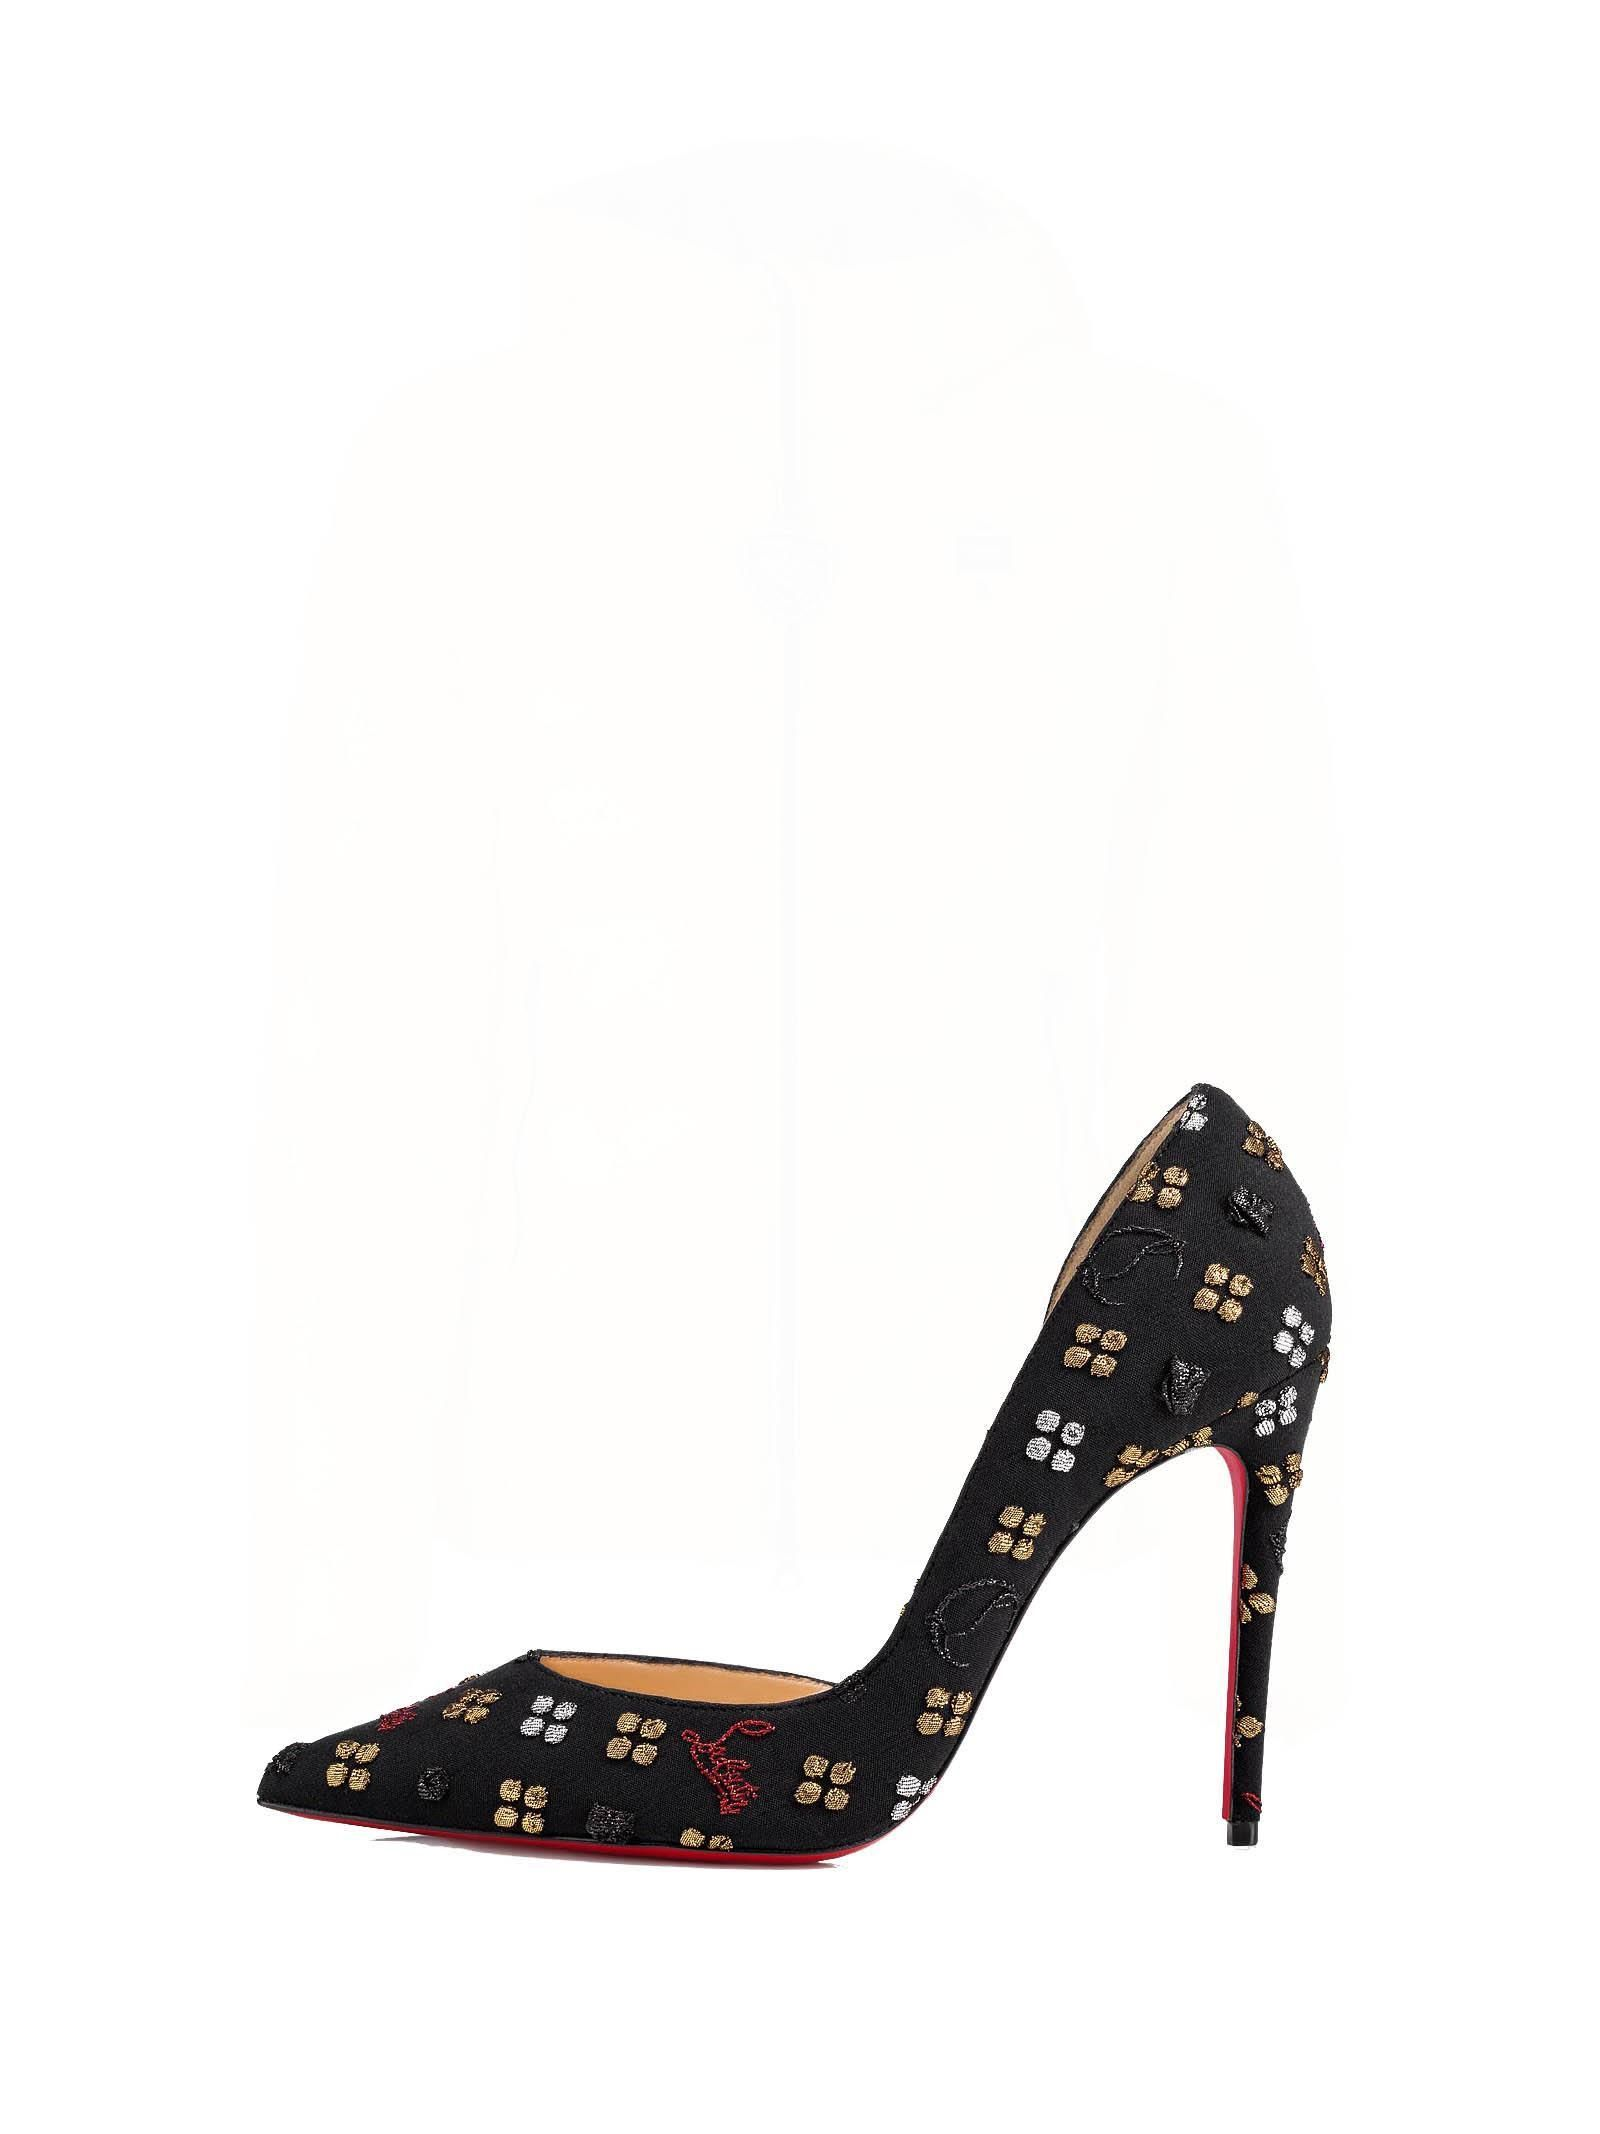 3d2bd027b8e Ready-to-Wear Report  Christian Louboutin Fall 2018 Collection at  Italist.com